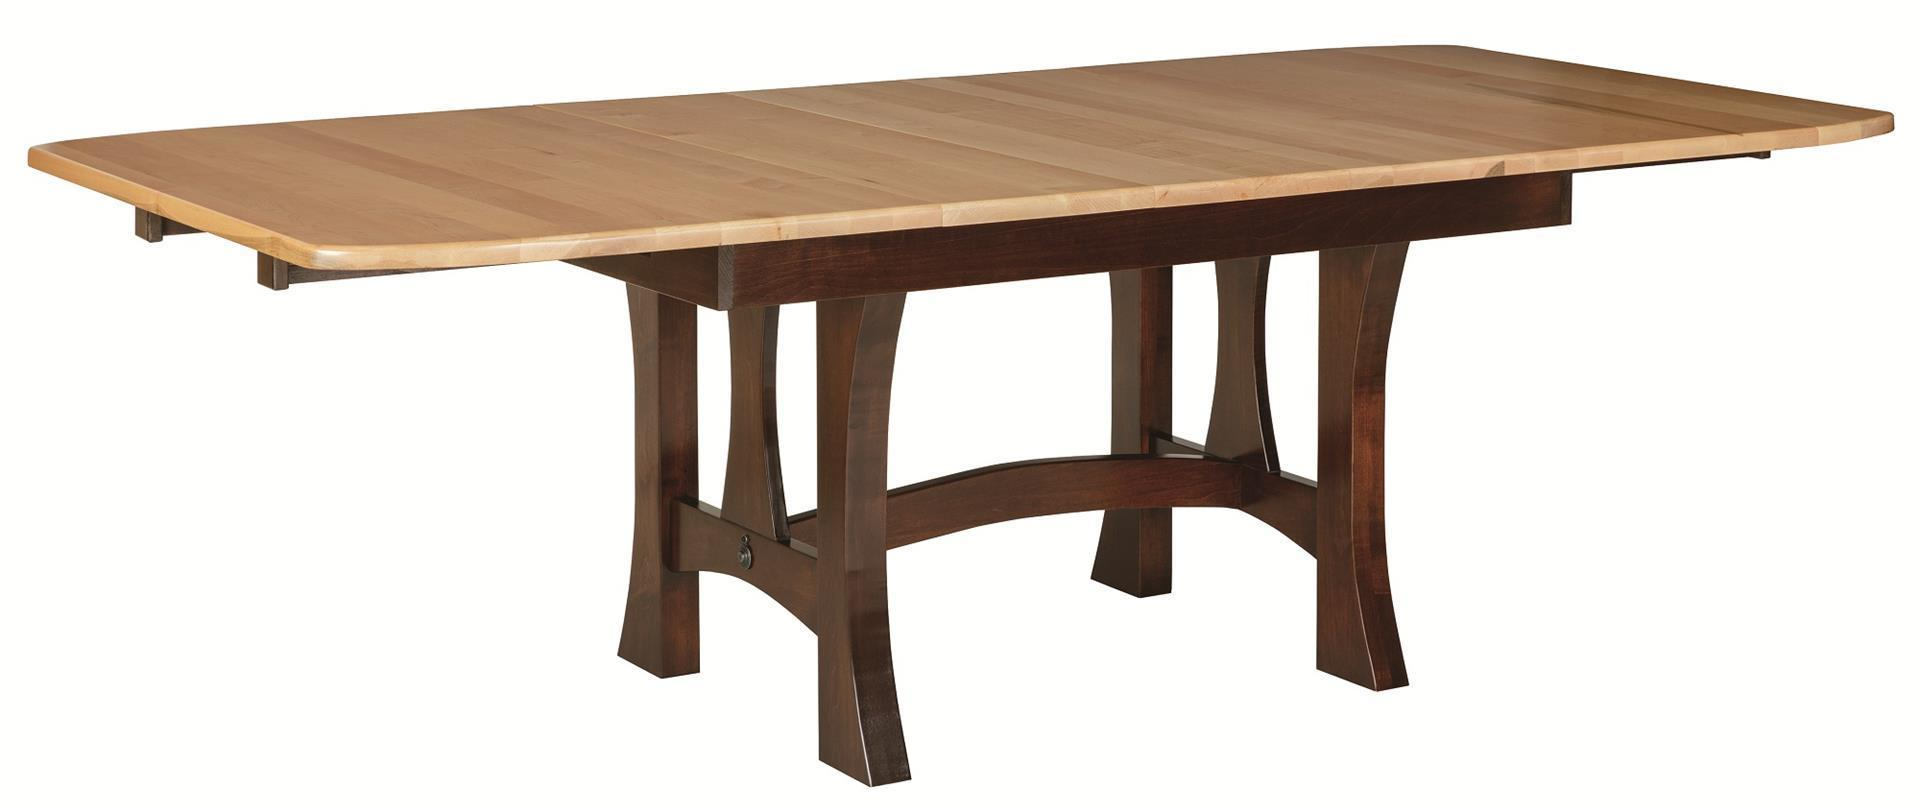 Monarch Solid Wood Extendable Dining Table From DutchCrafters Amish